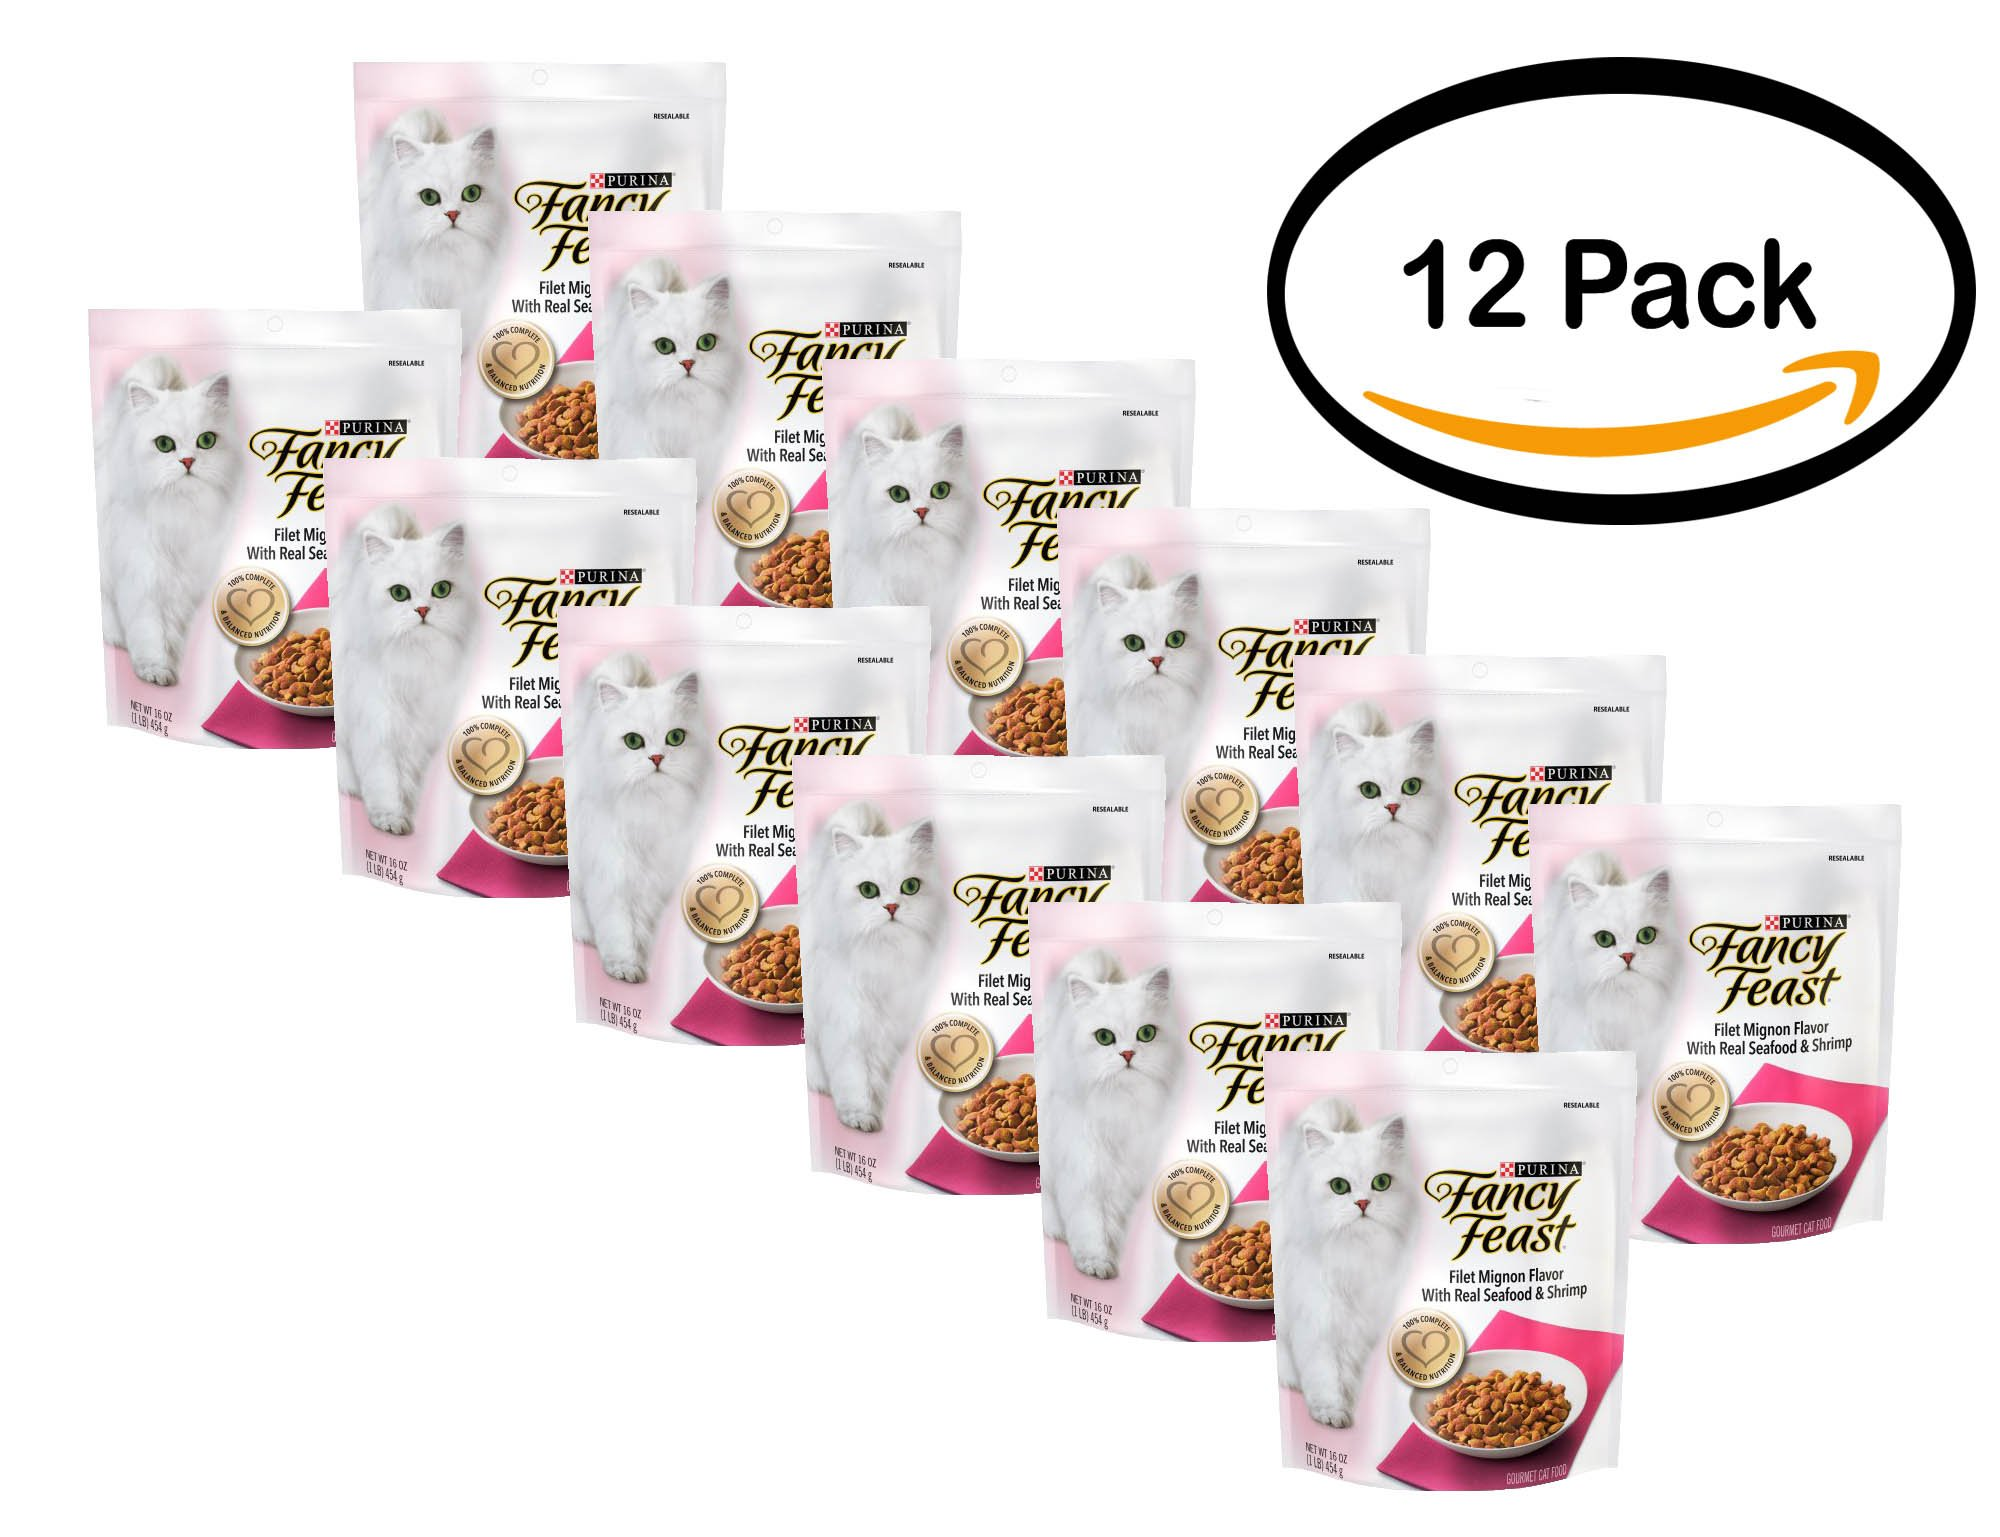 PACK OF 12 - Purina Fancy Feast Gourmet Dry Cat Food Filet Mignon Flavor With Real Seafood & Shrimp 1 lb. Bag